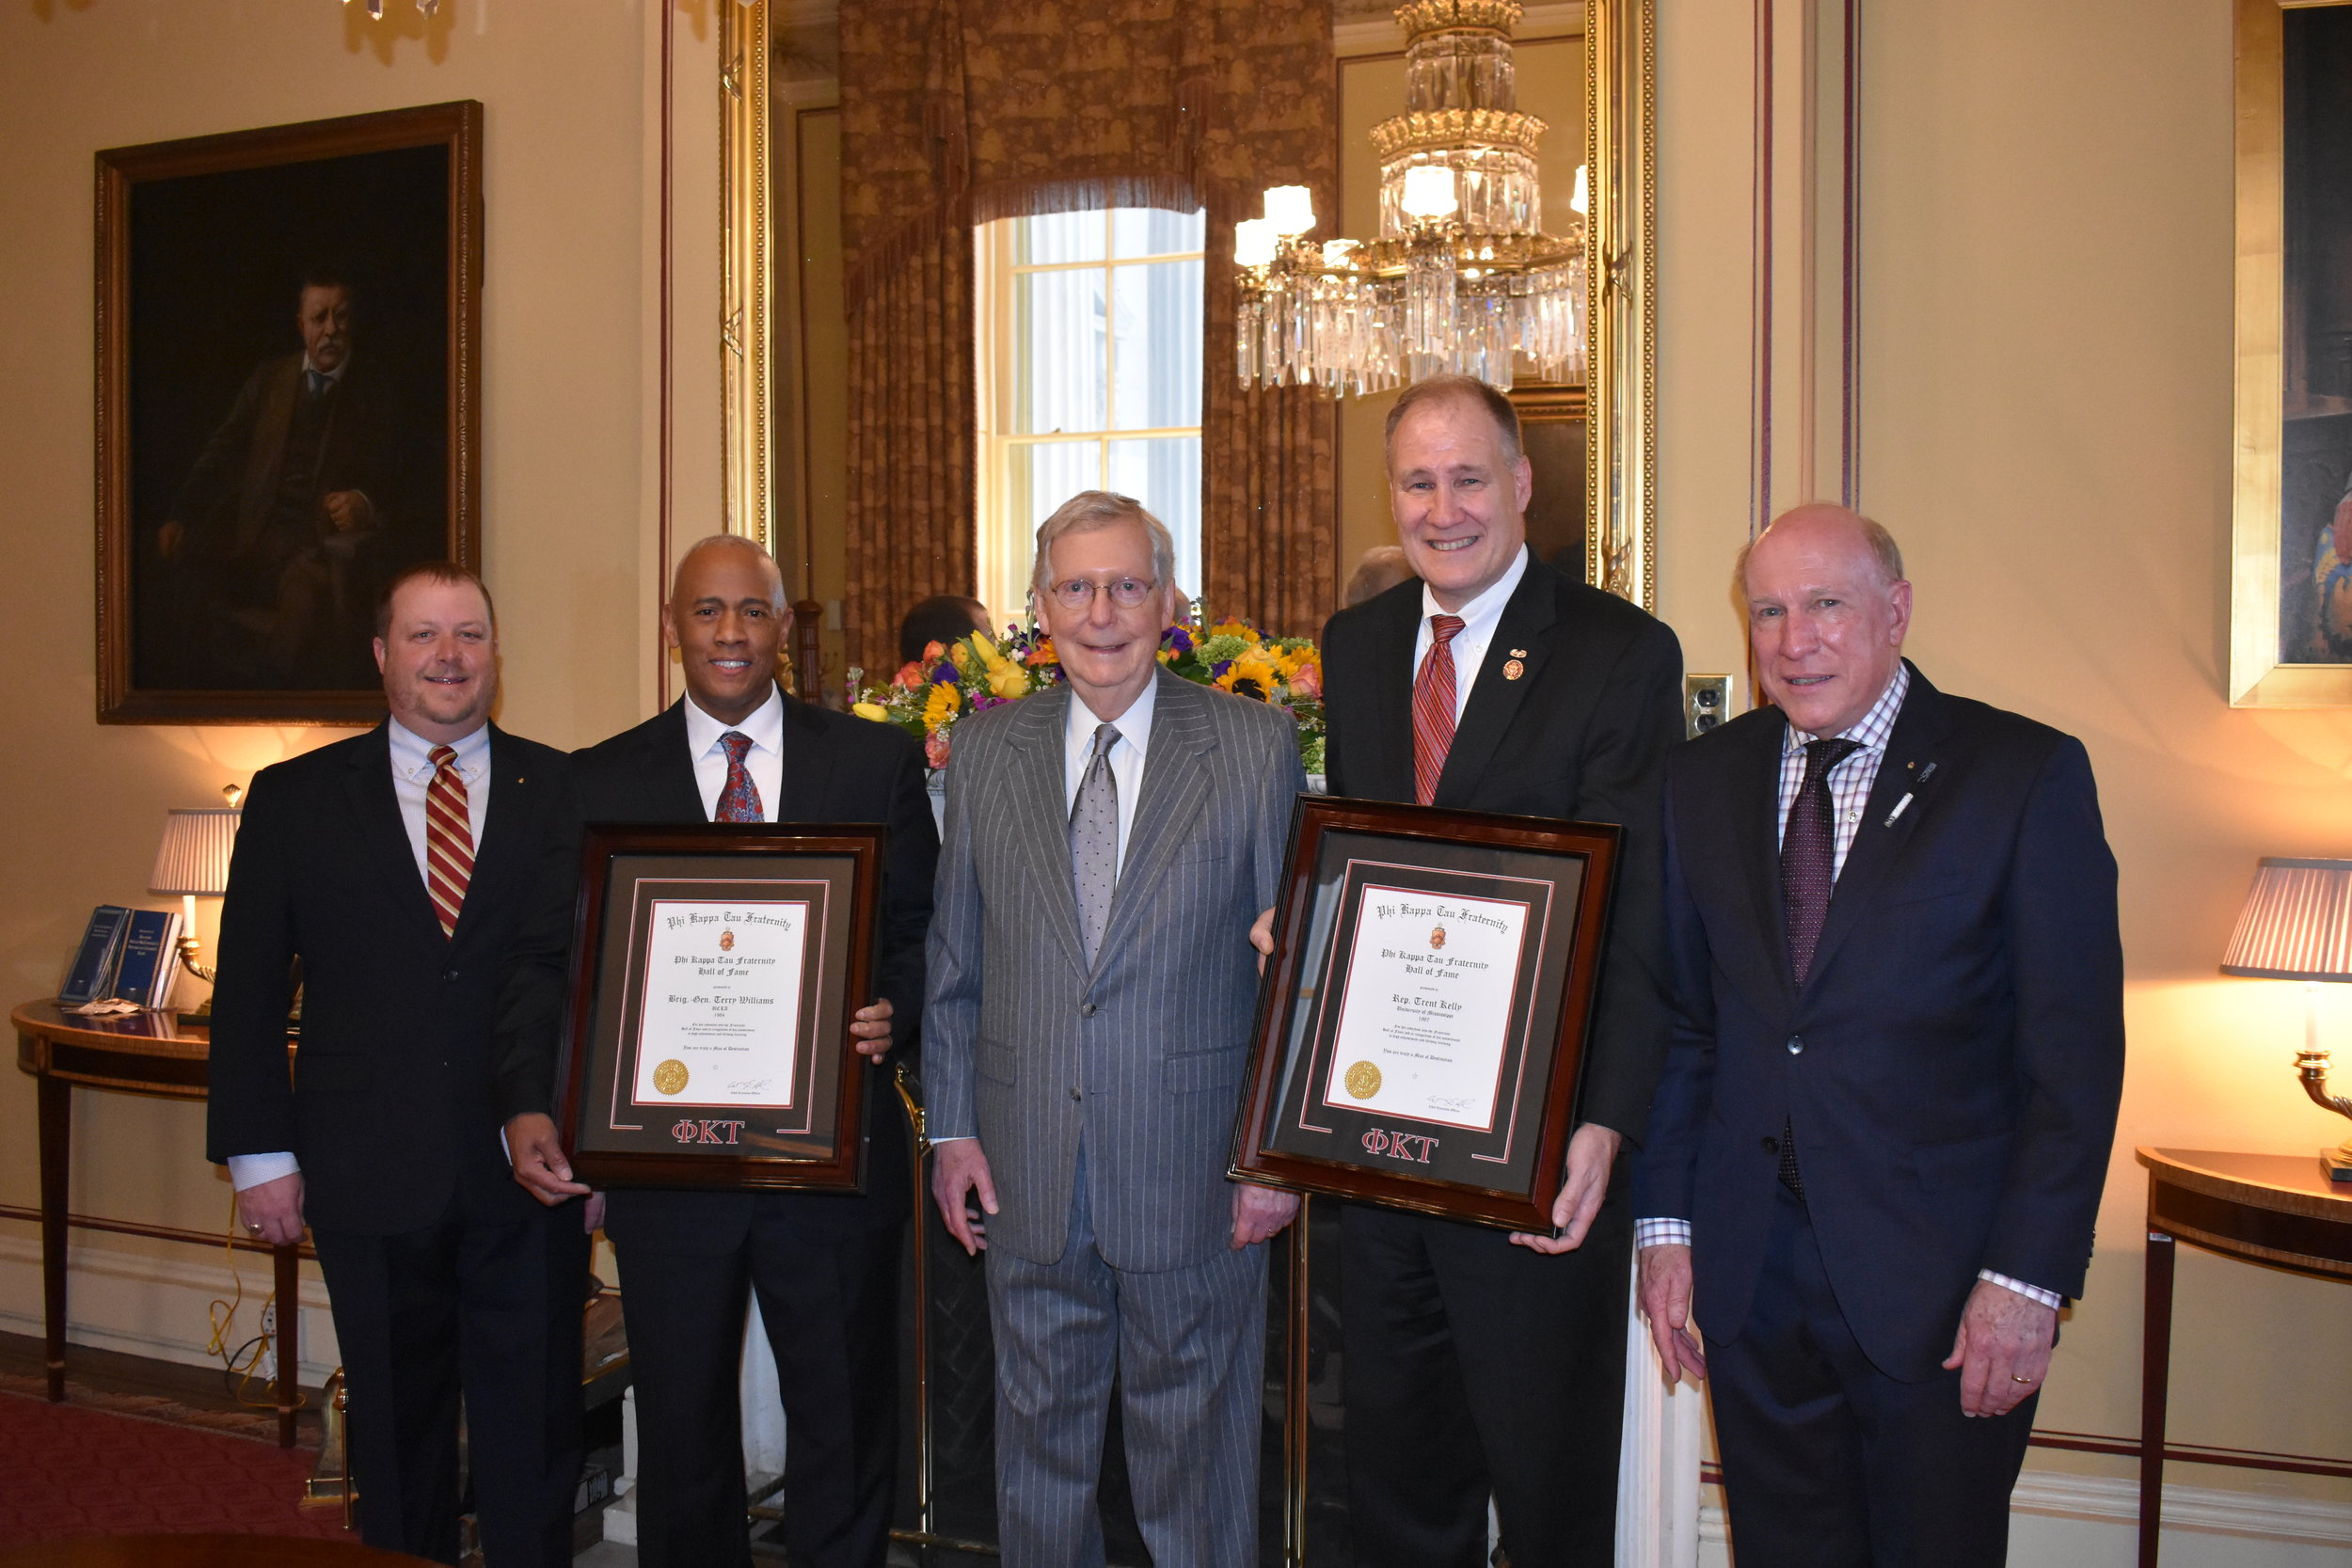 From left to right: CEO Tim Hudson, General Terry Williams, Leader Mitch McConnell, Representative Trent Kelly, and National President Bill Brasch